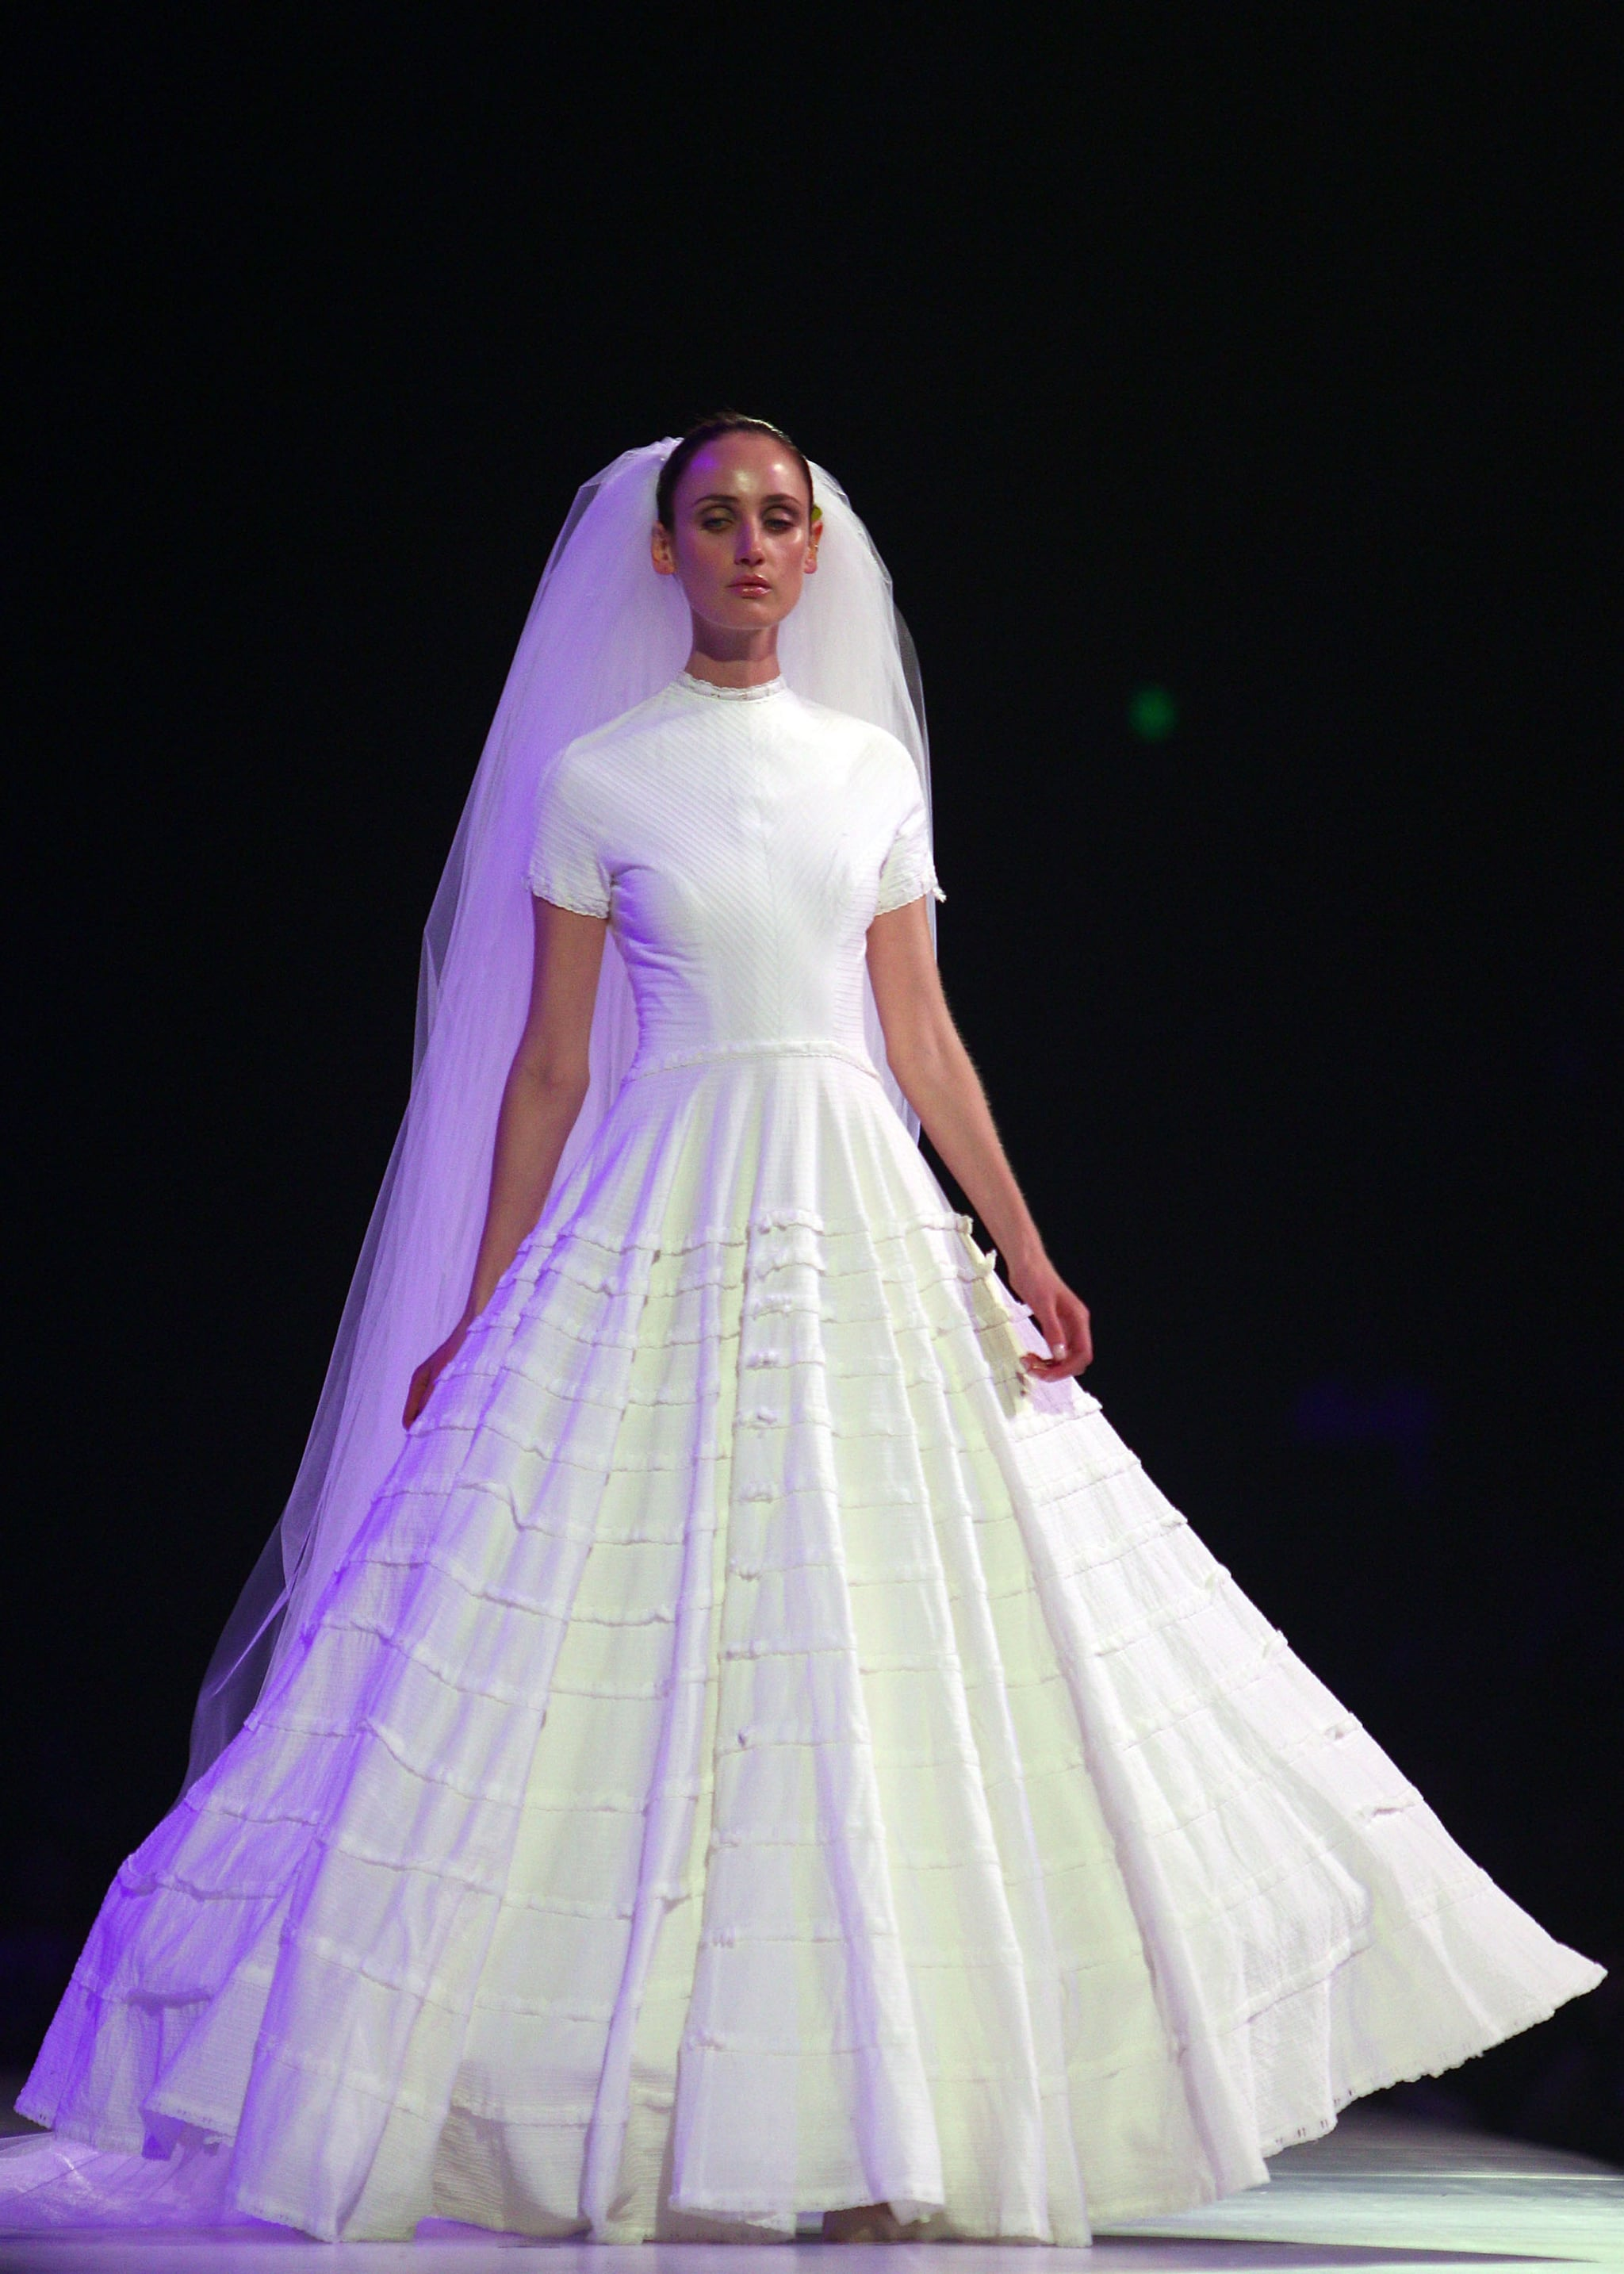 A dress from the Wedding Bells section, part of Fashion Full Stop: Decades of  Australian Fashion and Music show.